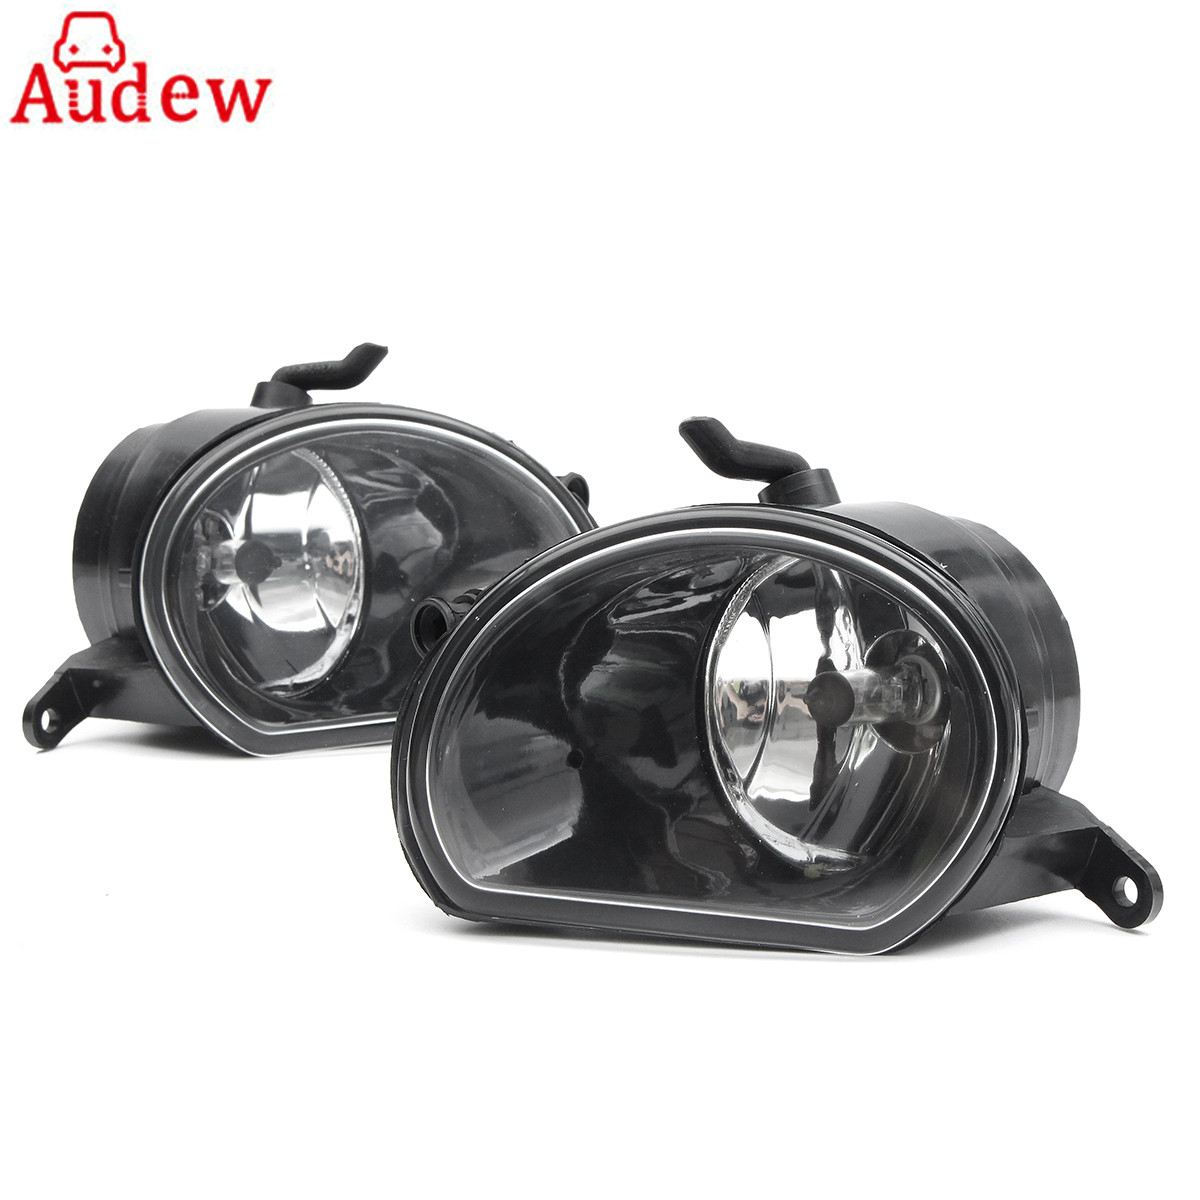 1 Pair Car Front Bumper LED H11 Fog Light Lamps Headlight Left&Right For AUDI Q7 2010 2011 2012 2013 2014 2015 car modification lamp fog lamps safety light h11 12v 55w suitable for mitsubishi triton l200 2009 2010 2011 2012 on